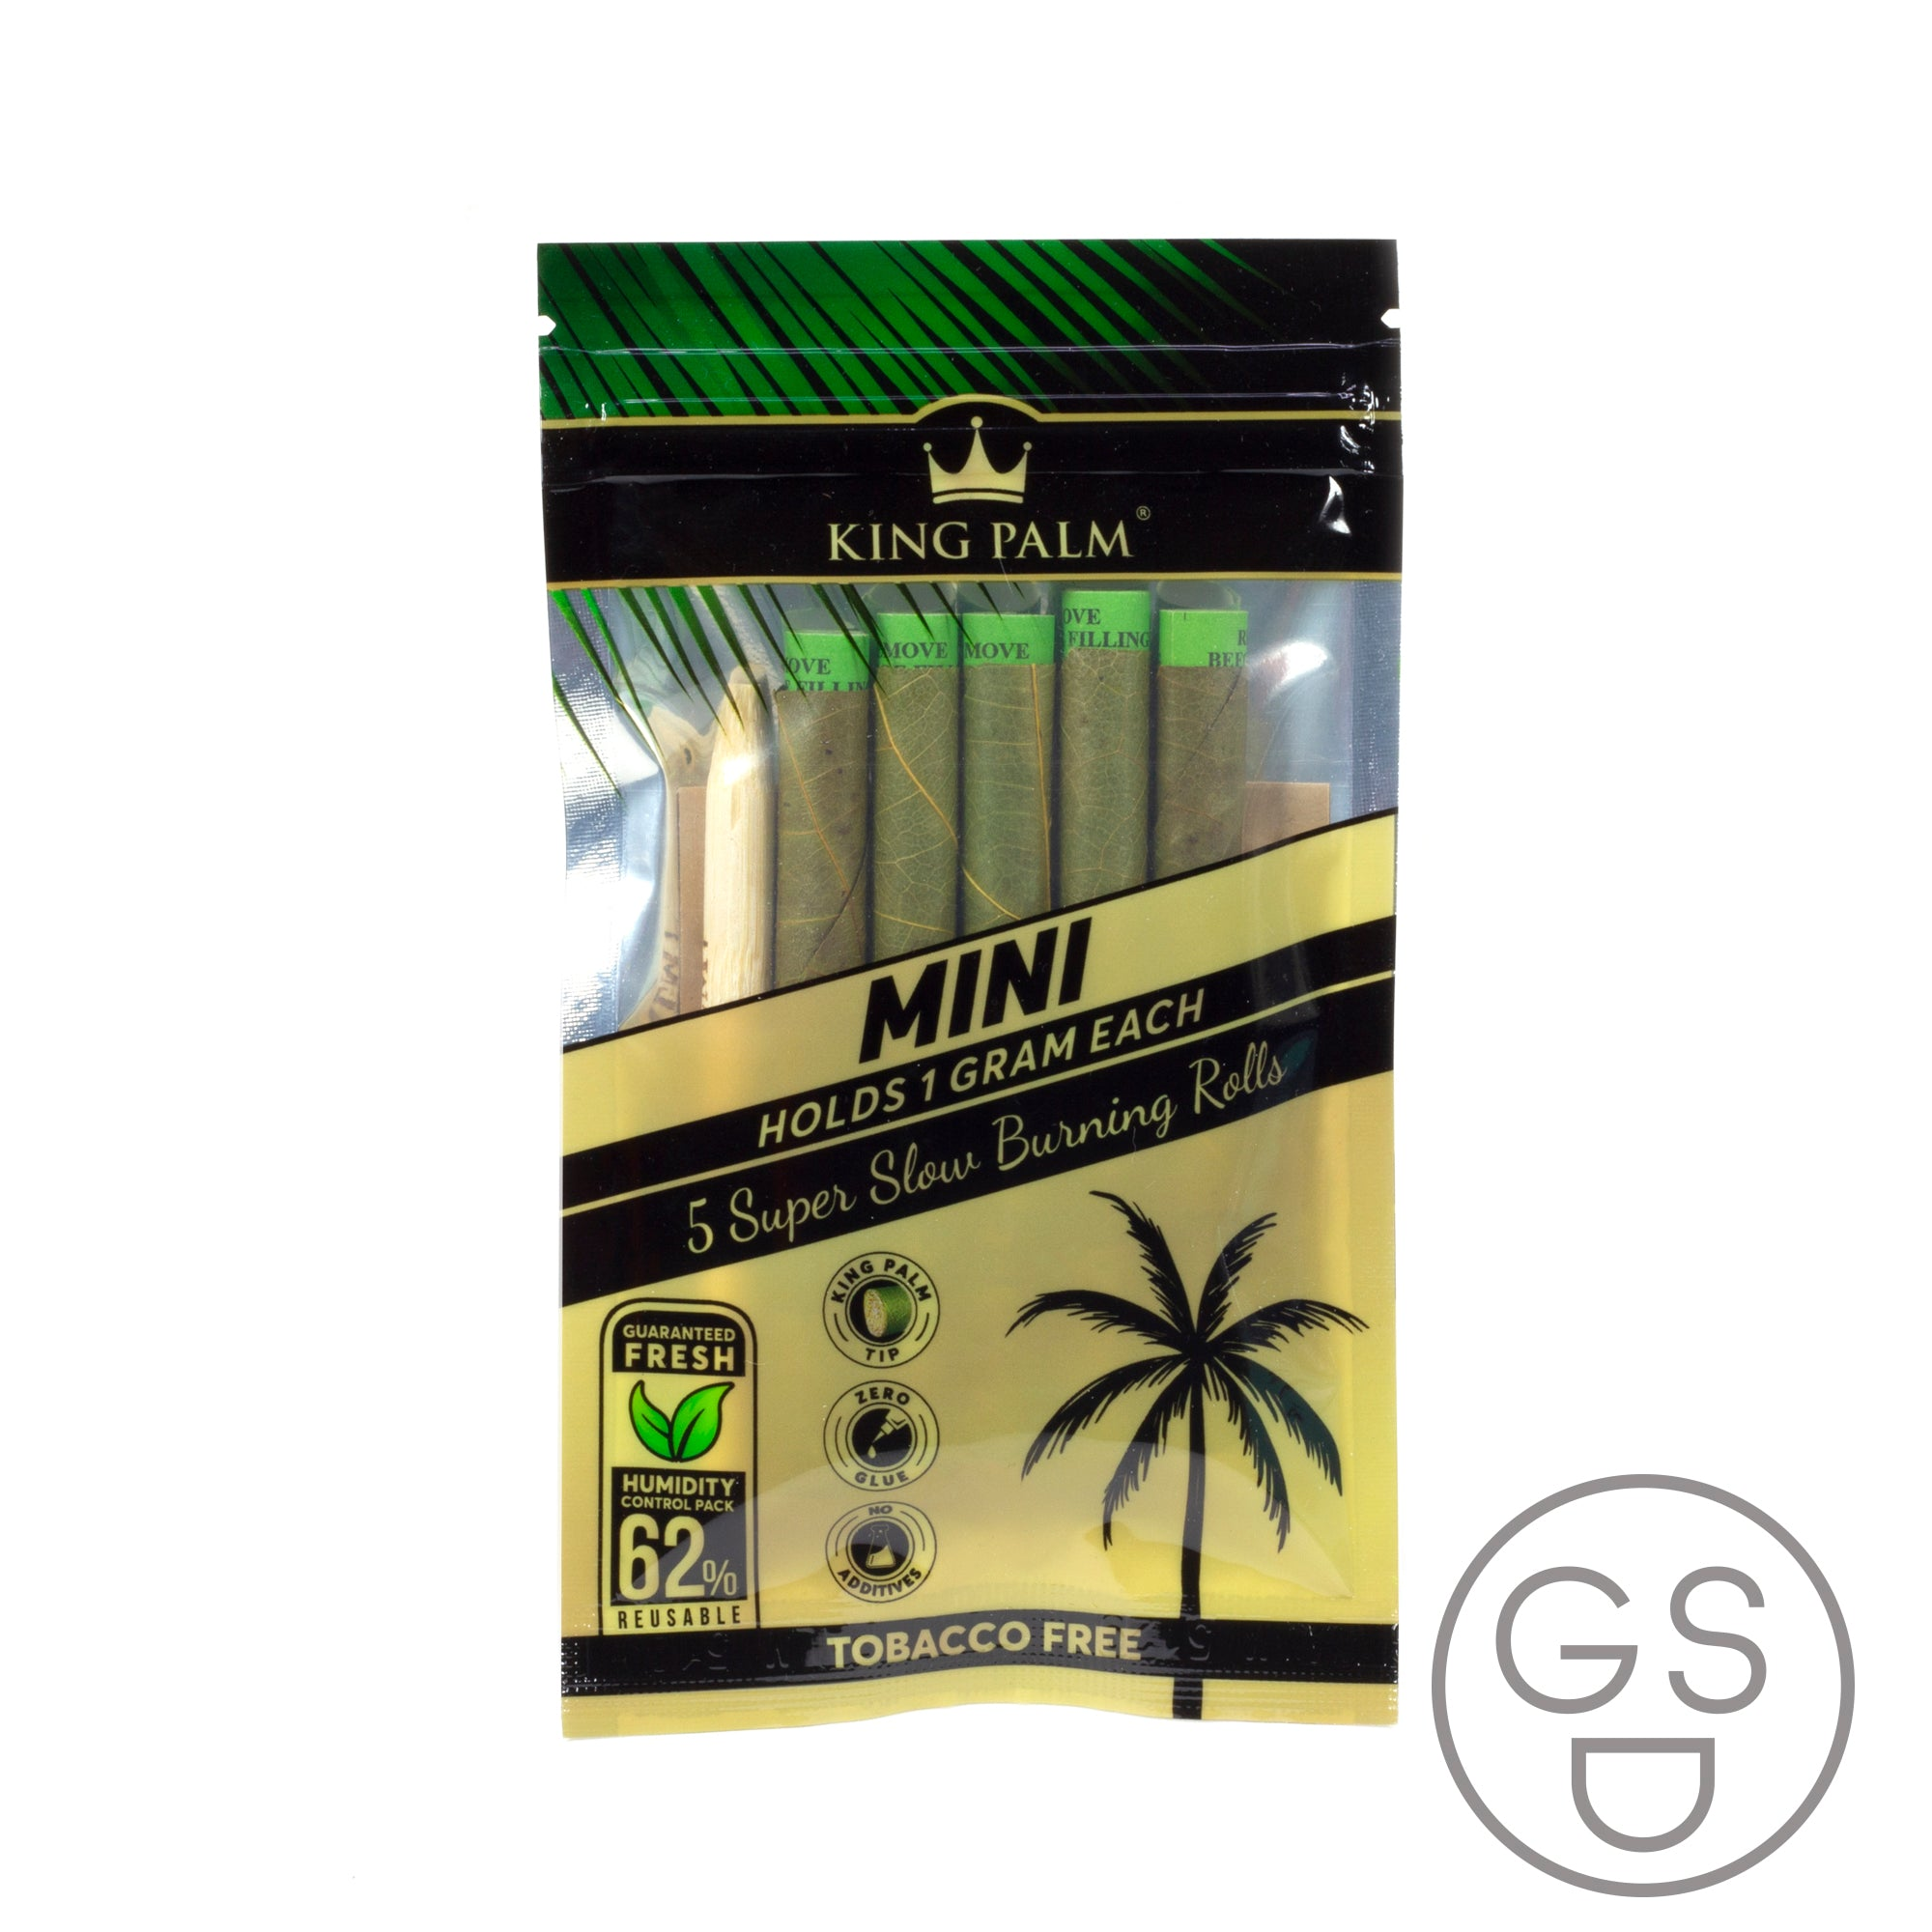 King Palm Natural Palm Leaf Blunt Wraps - Mini 5 Pack